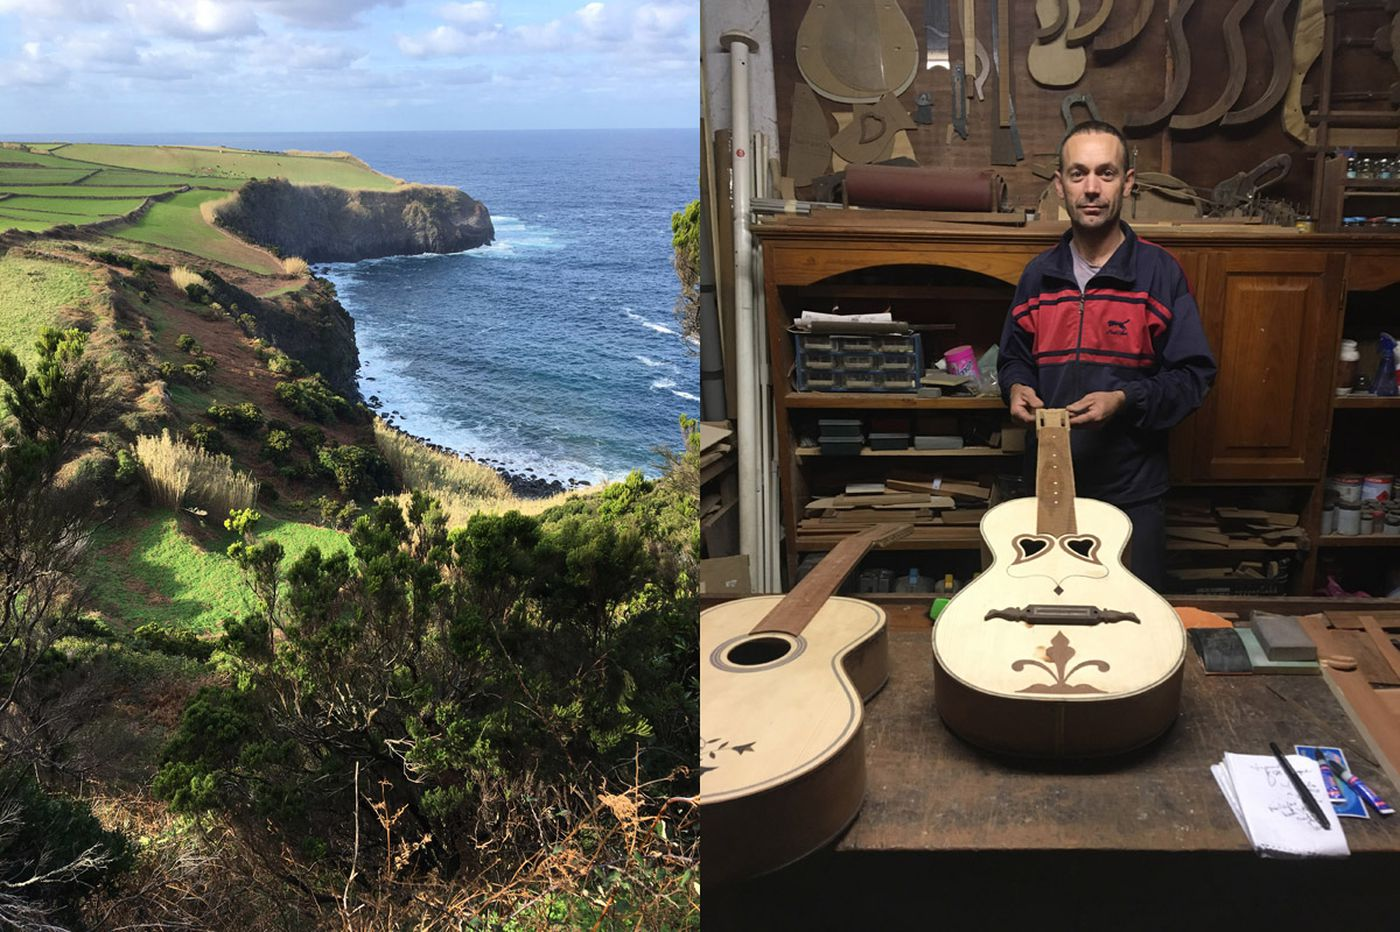 In the Azores, beautiful music along with beautiful landscapes